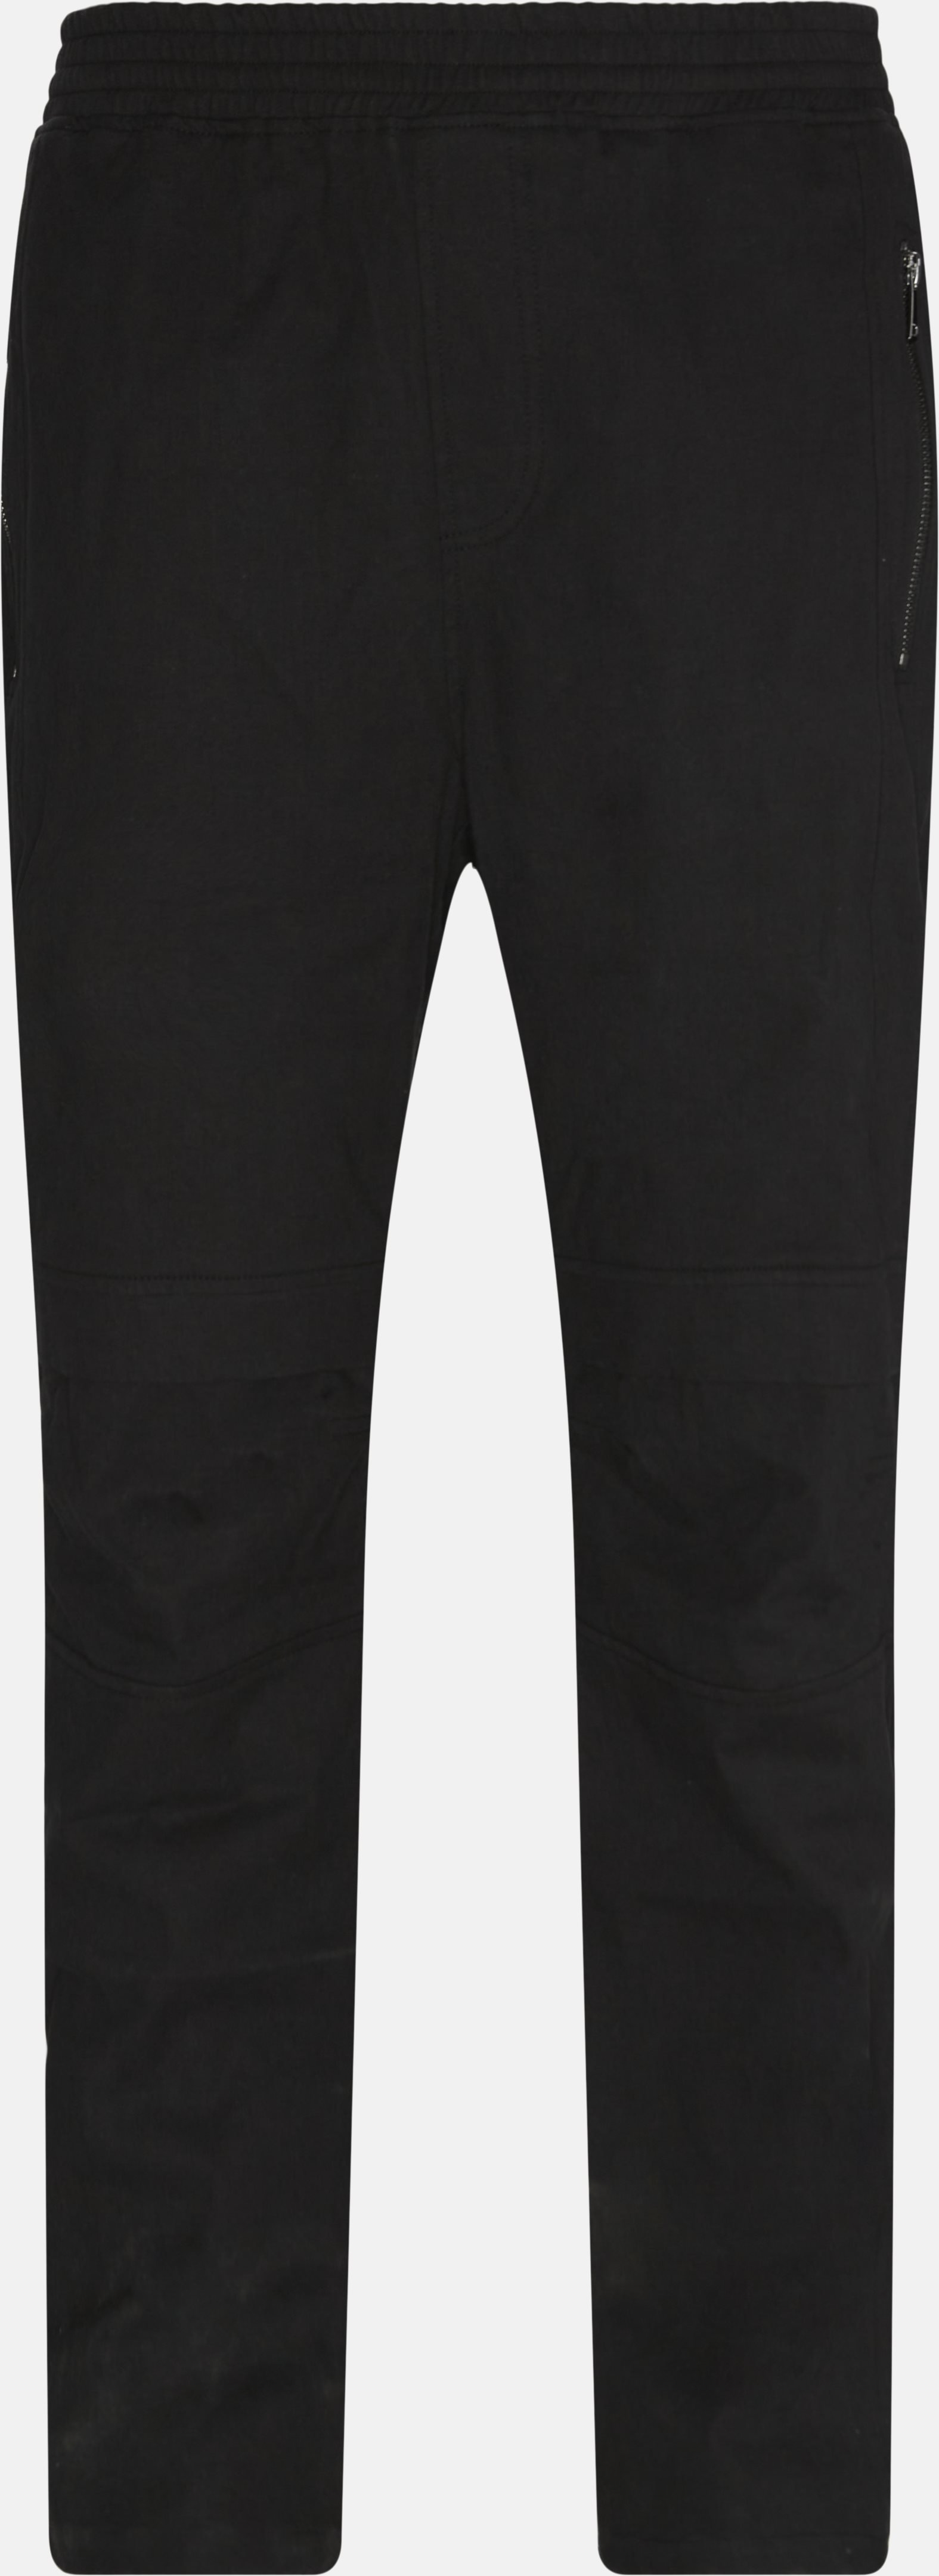 Felix Pants - Bukser - Regular - Sort